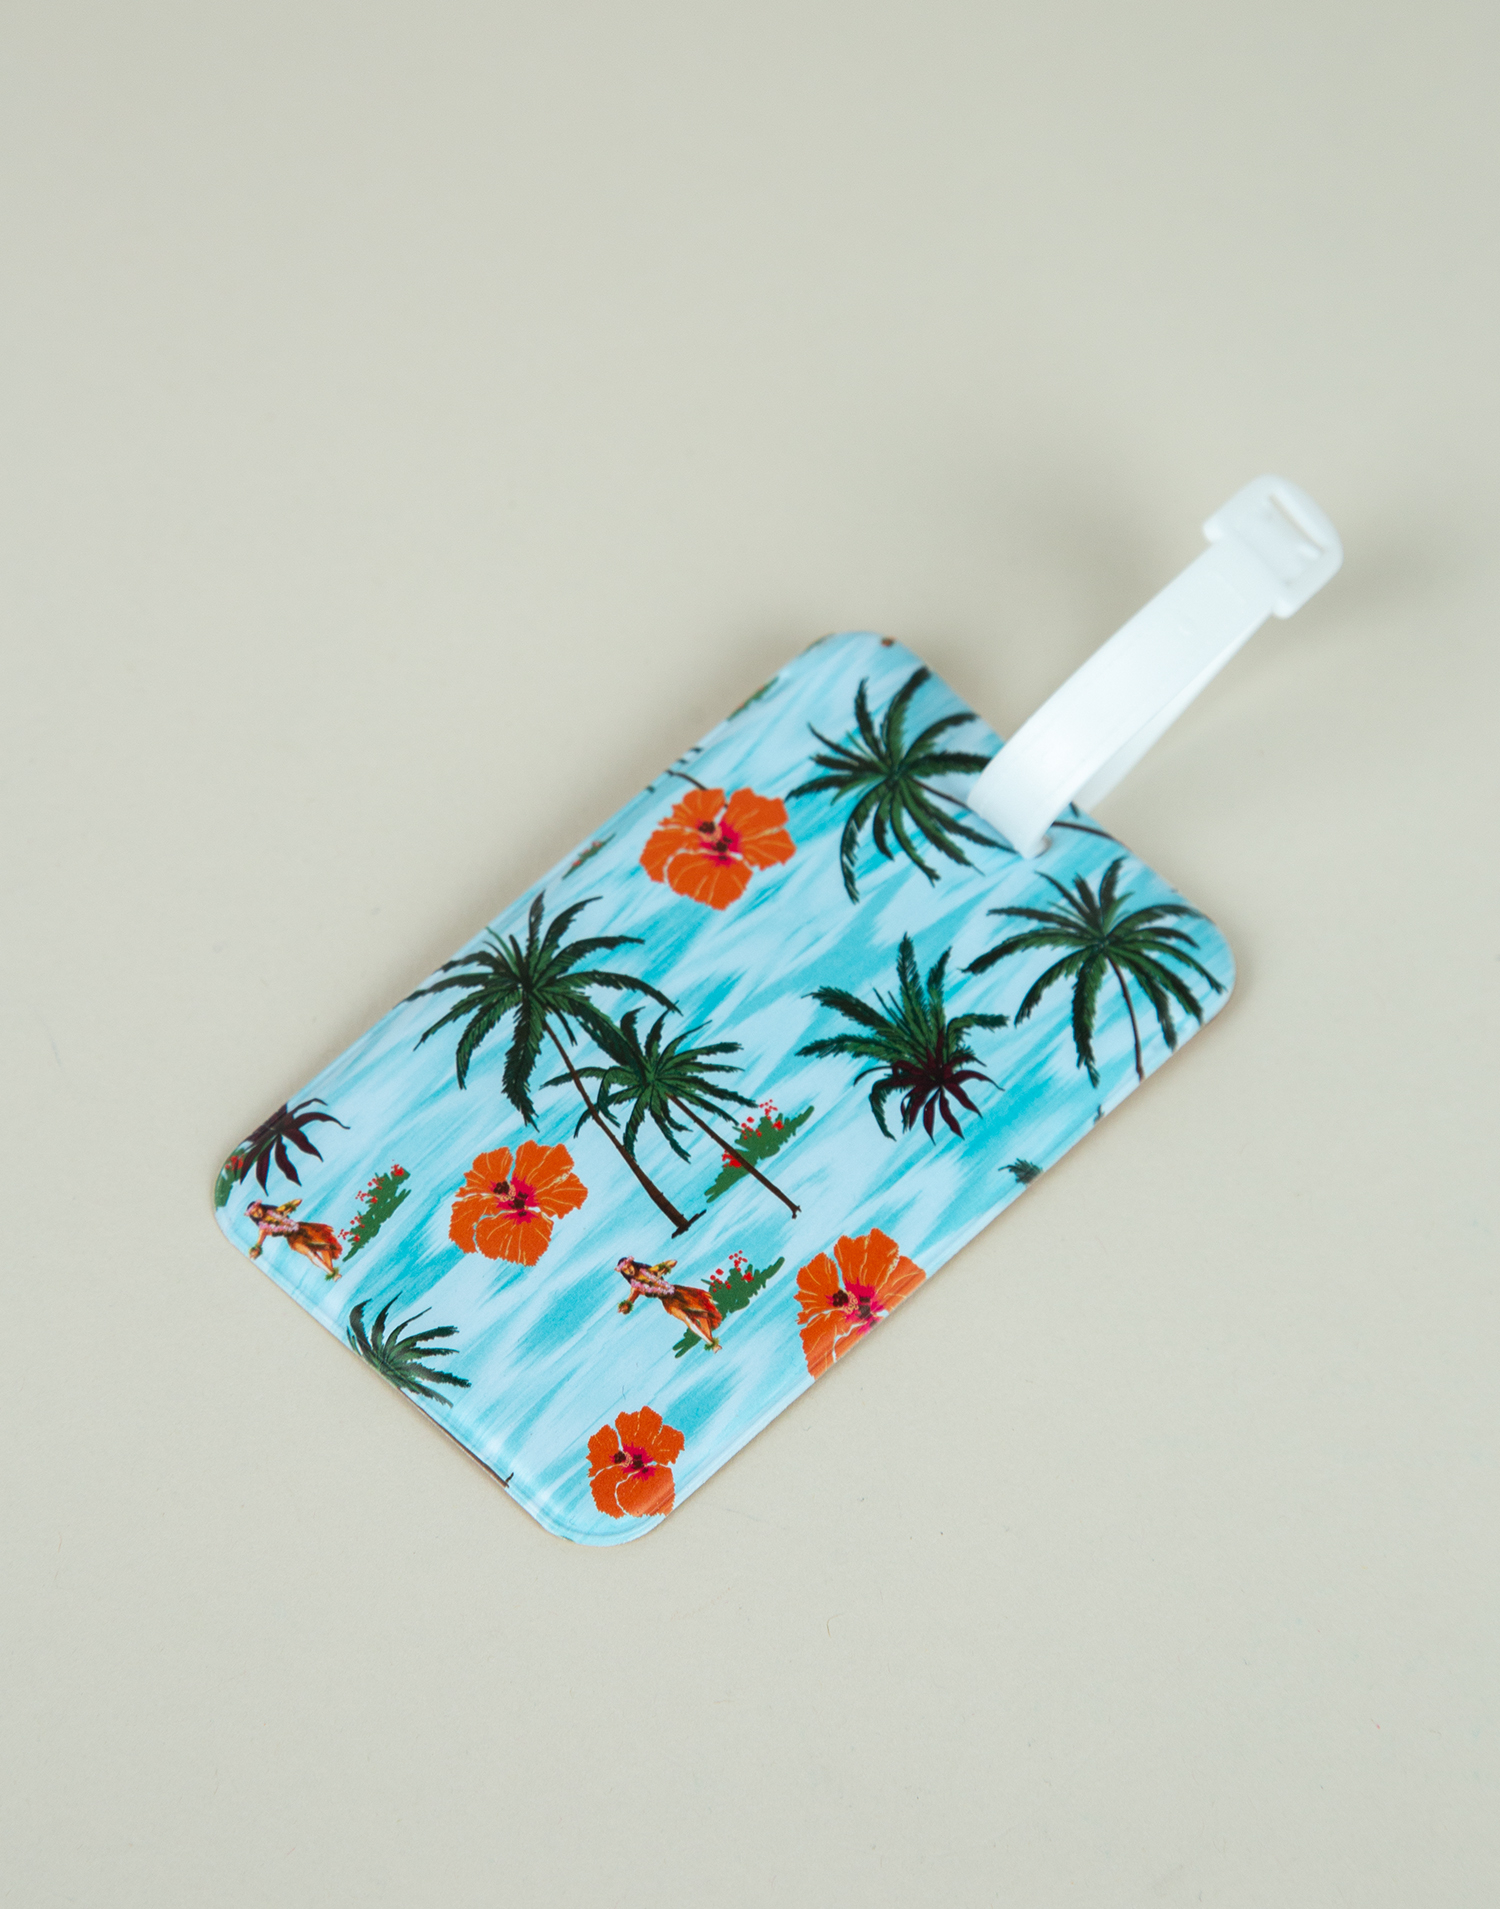 Suitcase tag